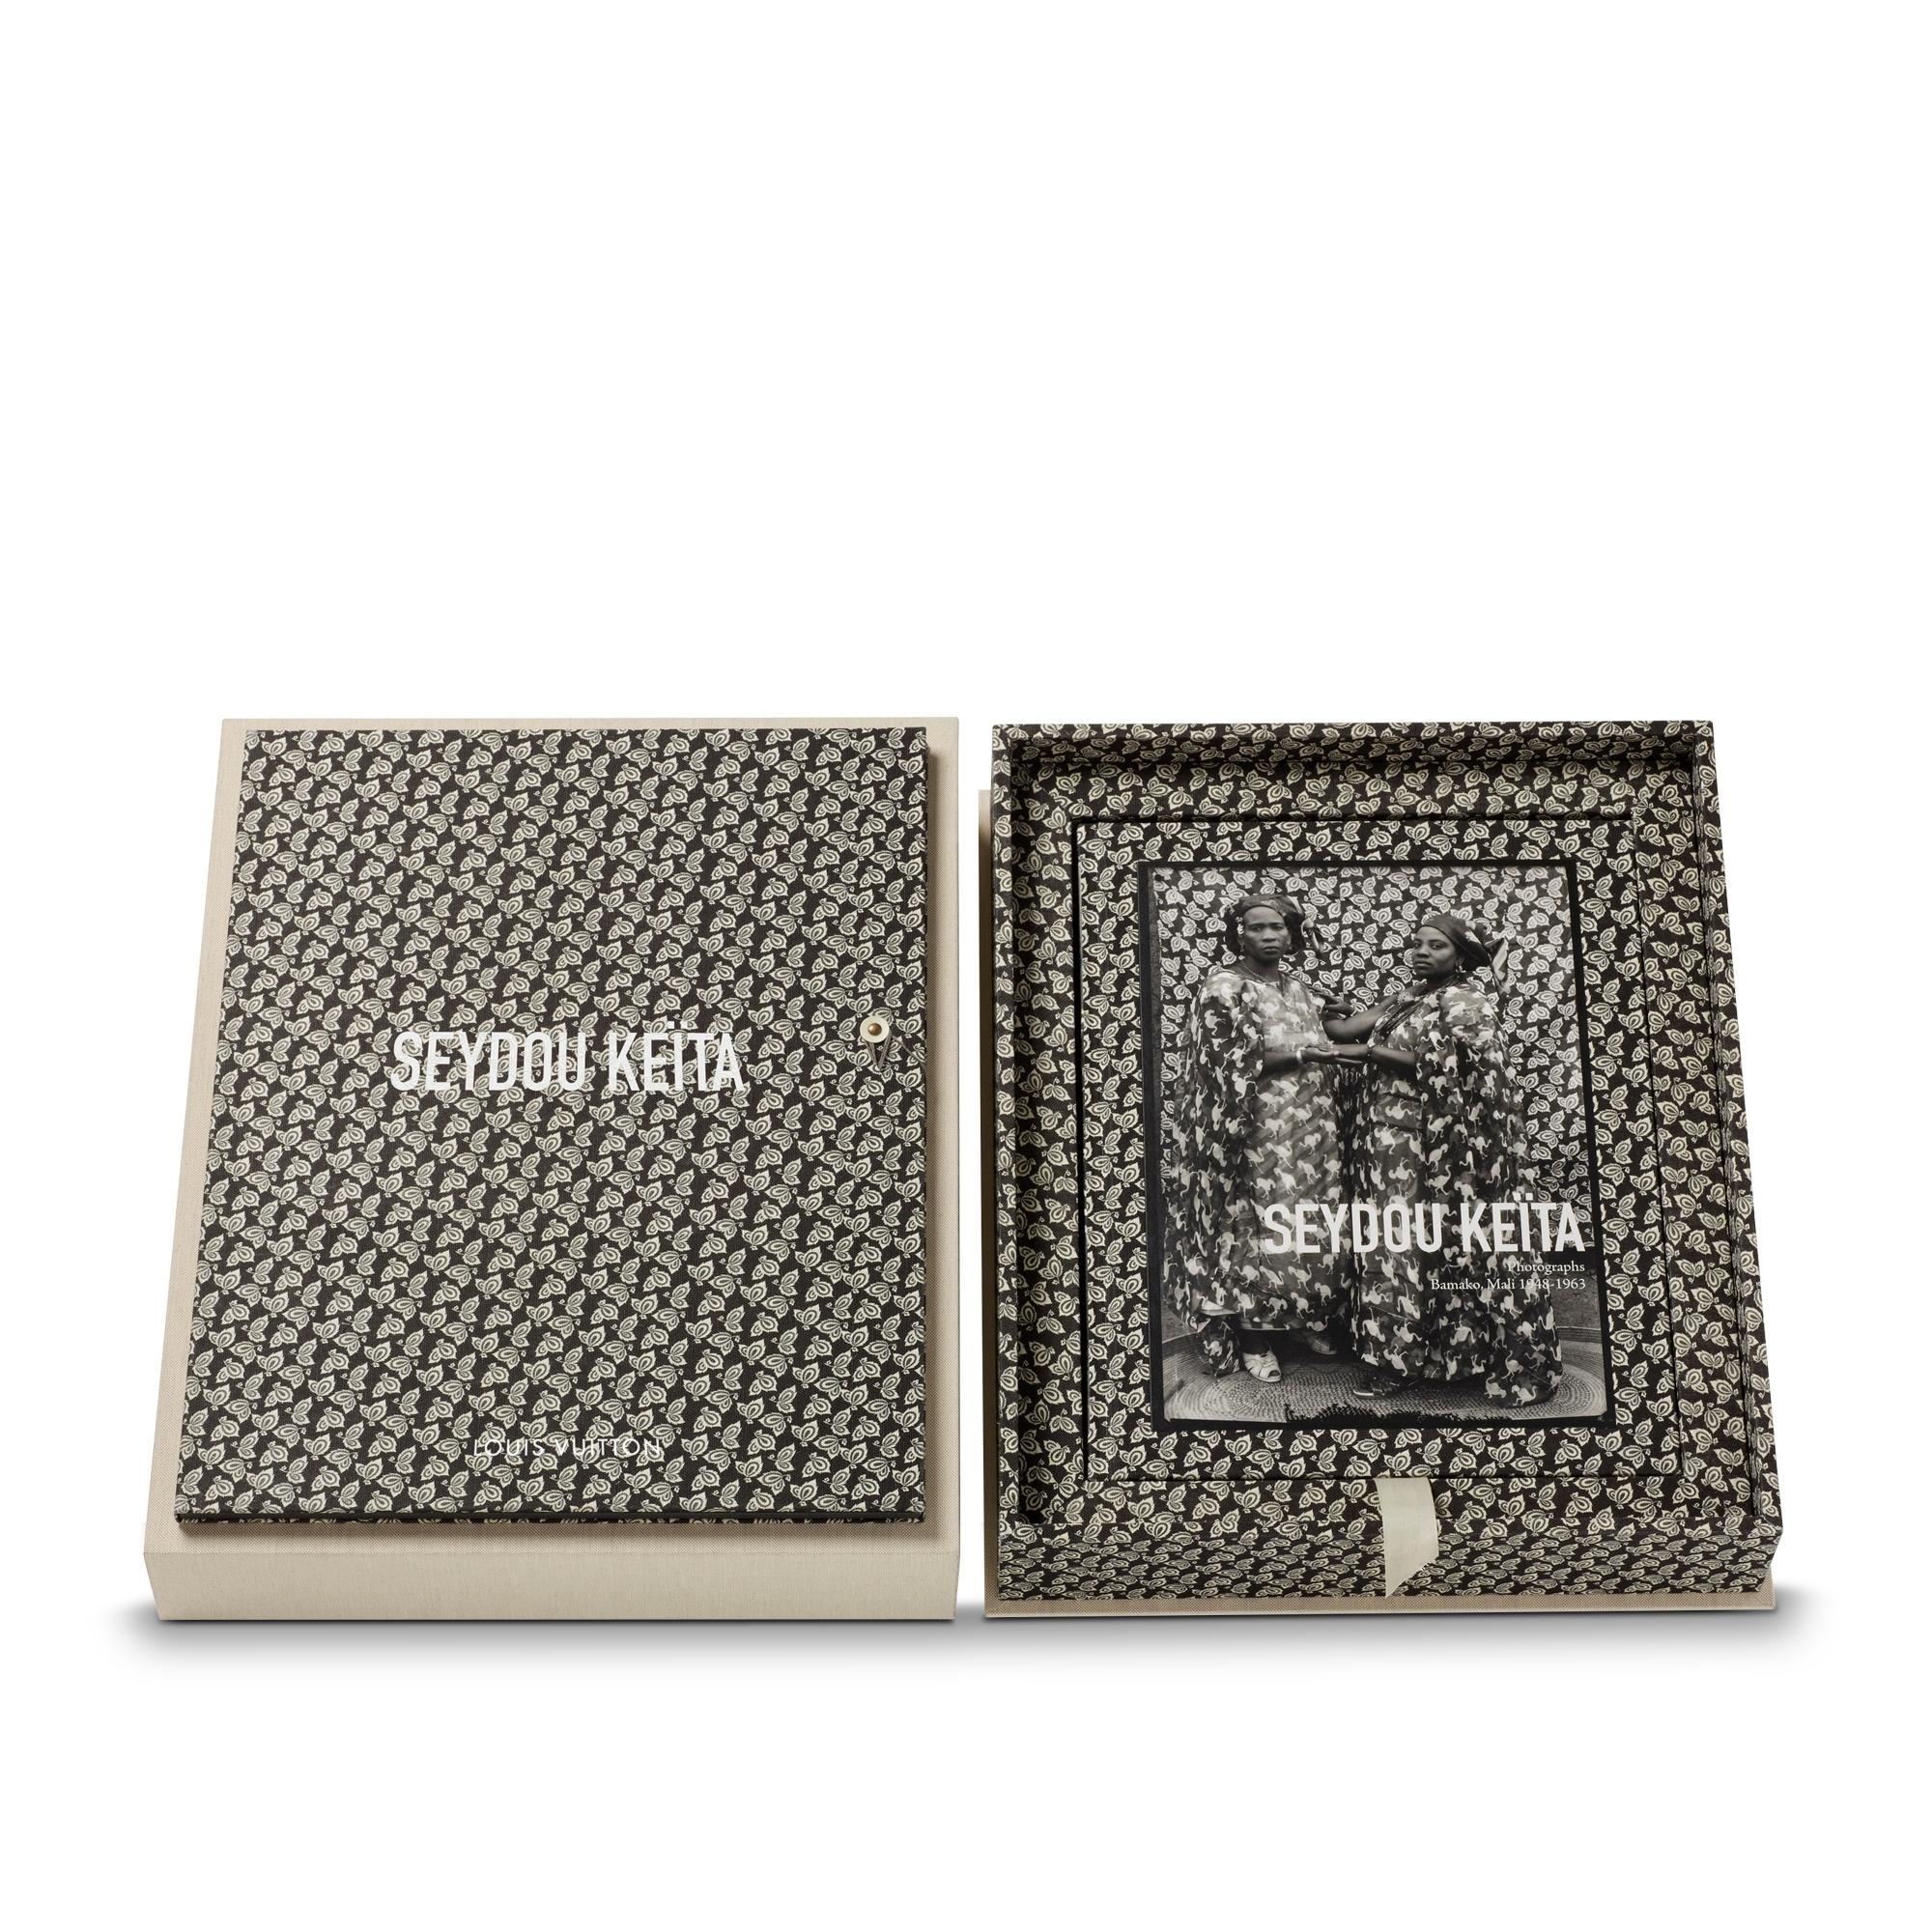 Men - Collector's edition of the Seydou Keïta book   Men Accessories Books By Louis Vuitton | LOUIS VUITTON